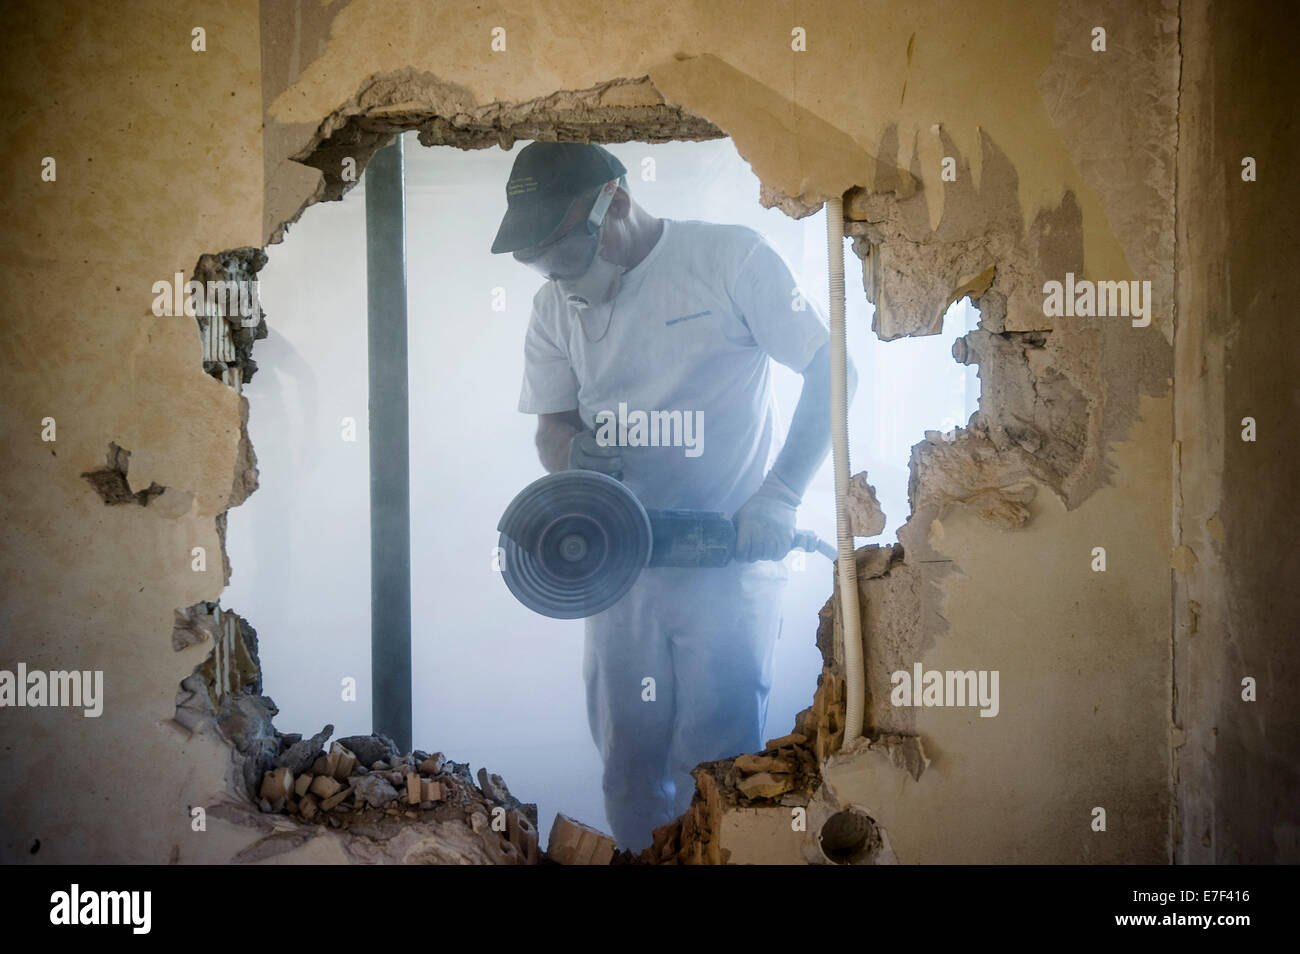 Craftsman during the substantial refurbishment of a building - Stock Image